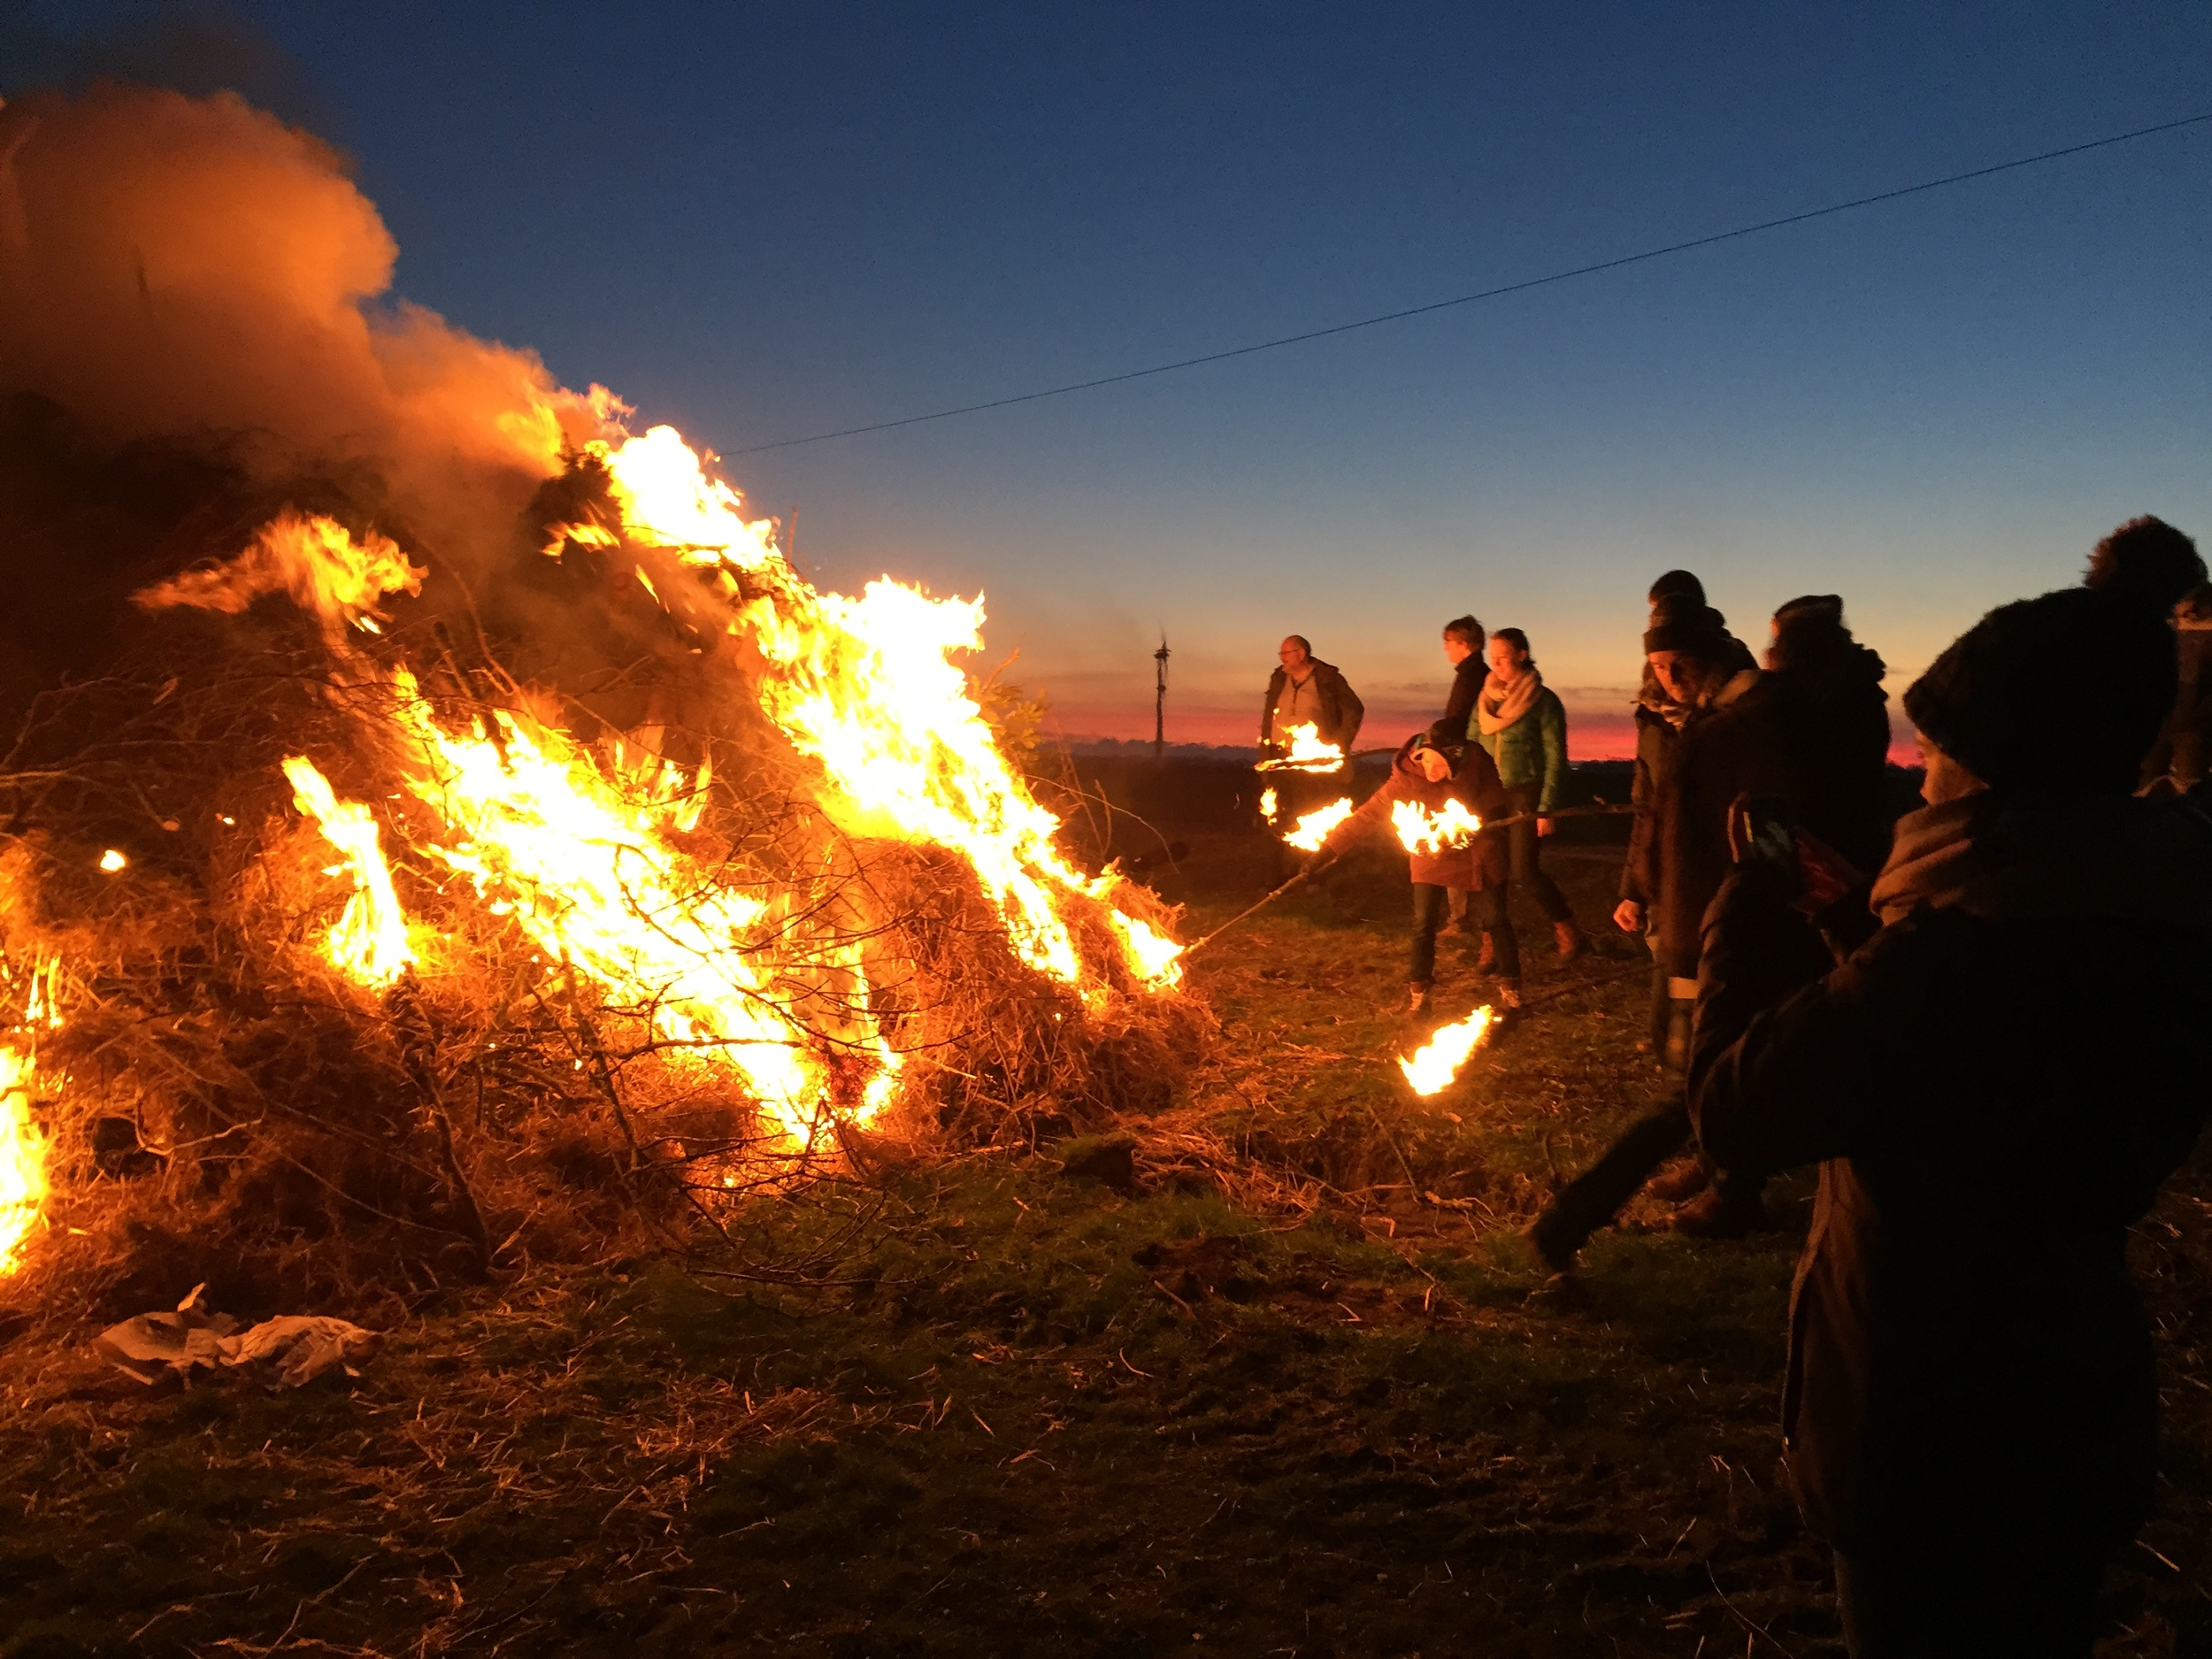 Igniting the bonfire in the 'magic hour'